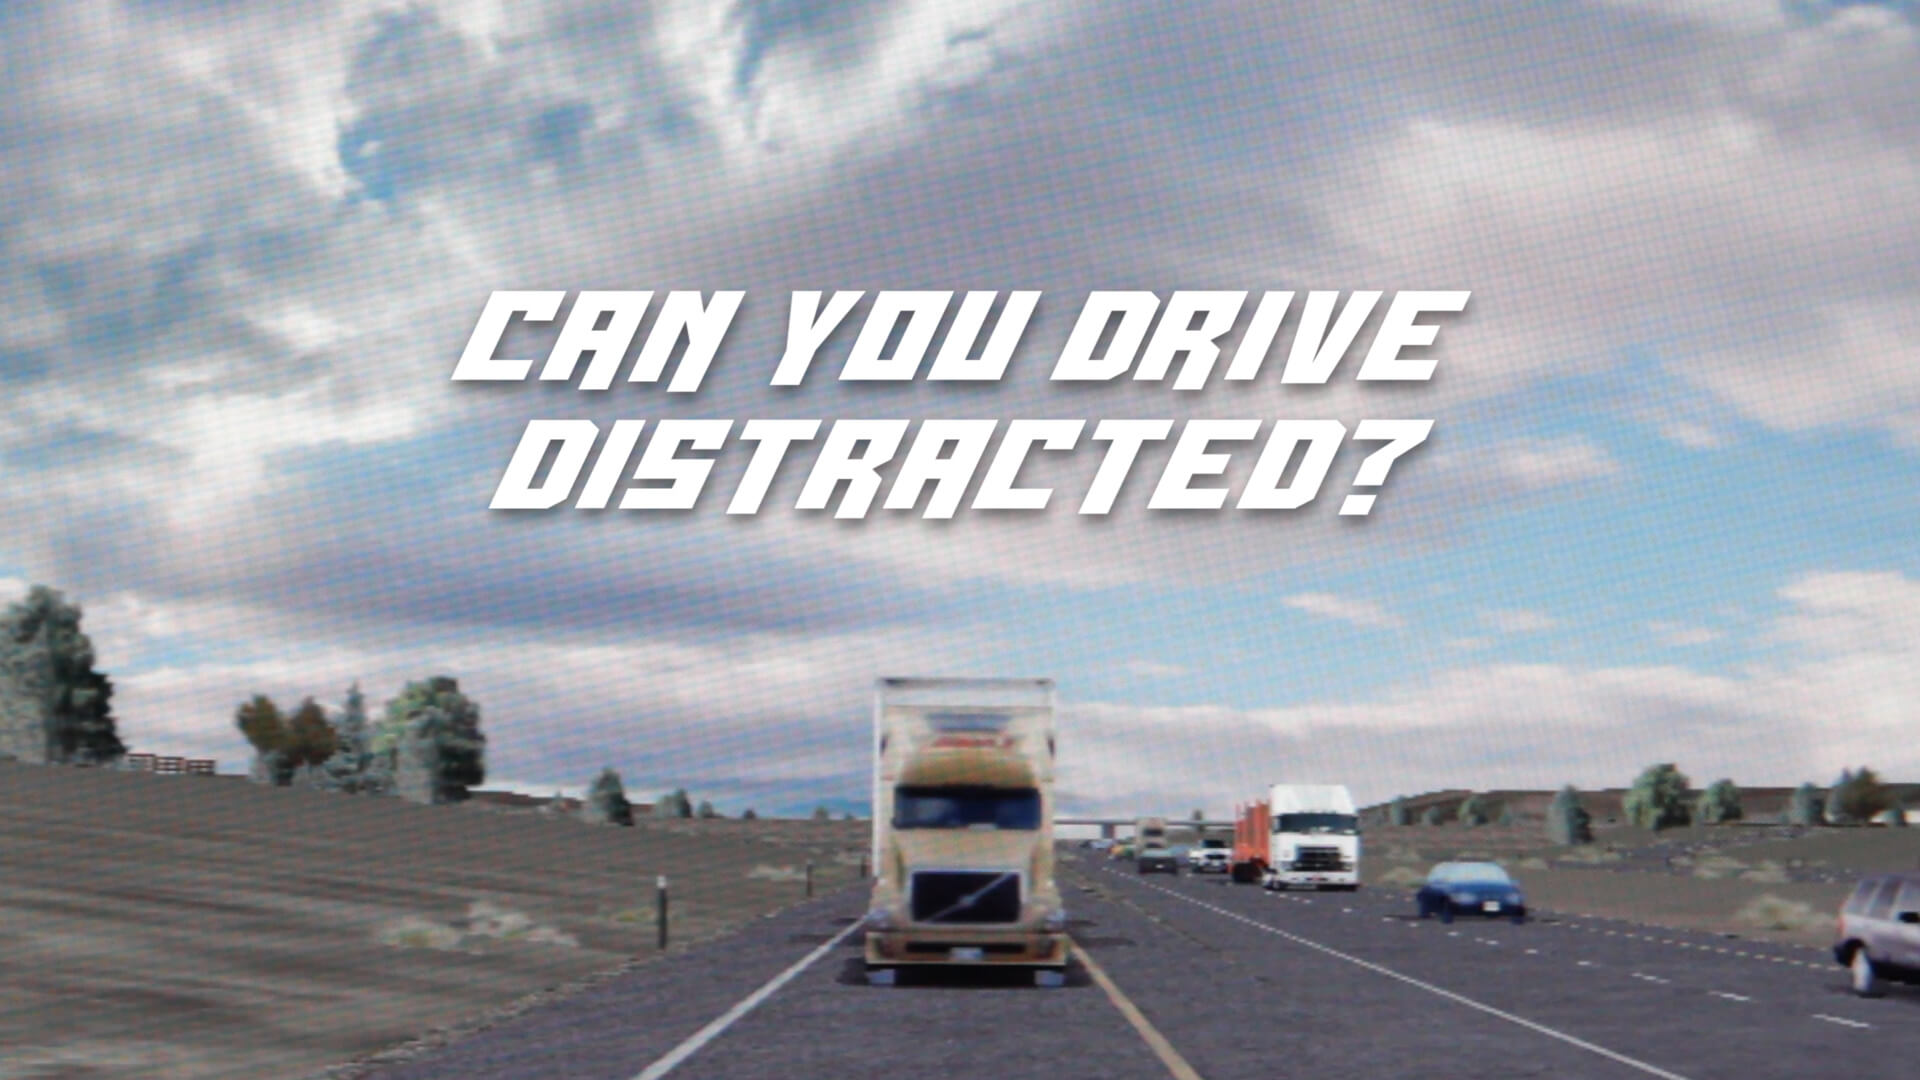 Distracted Driving examples